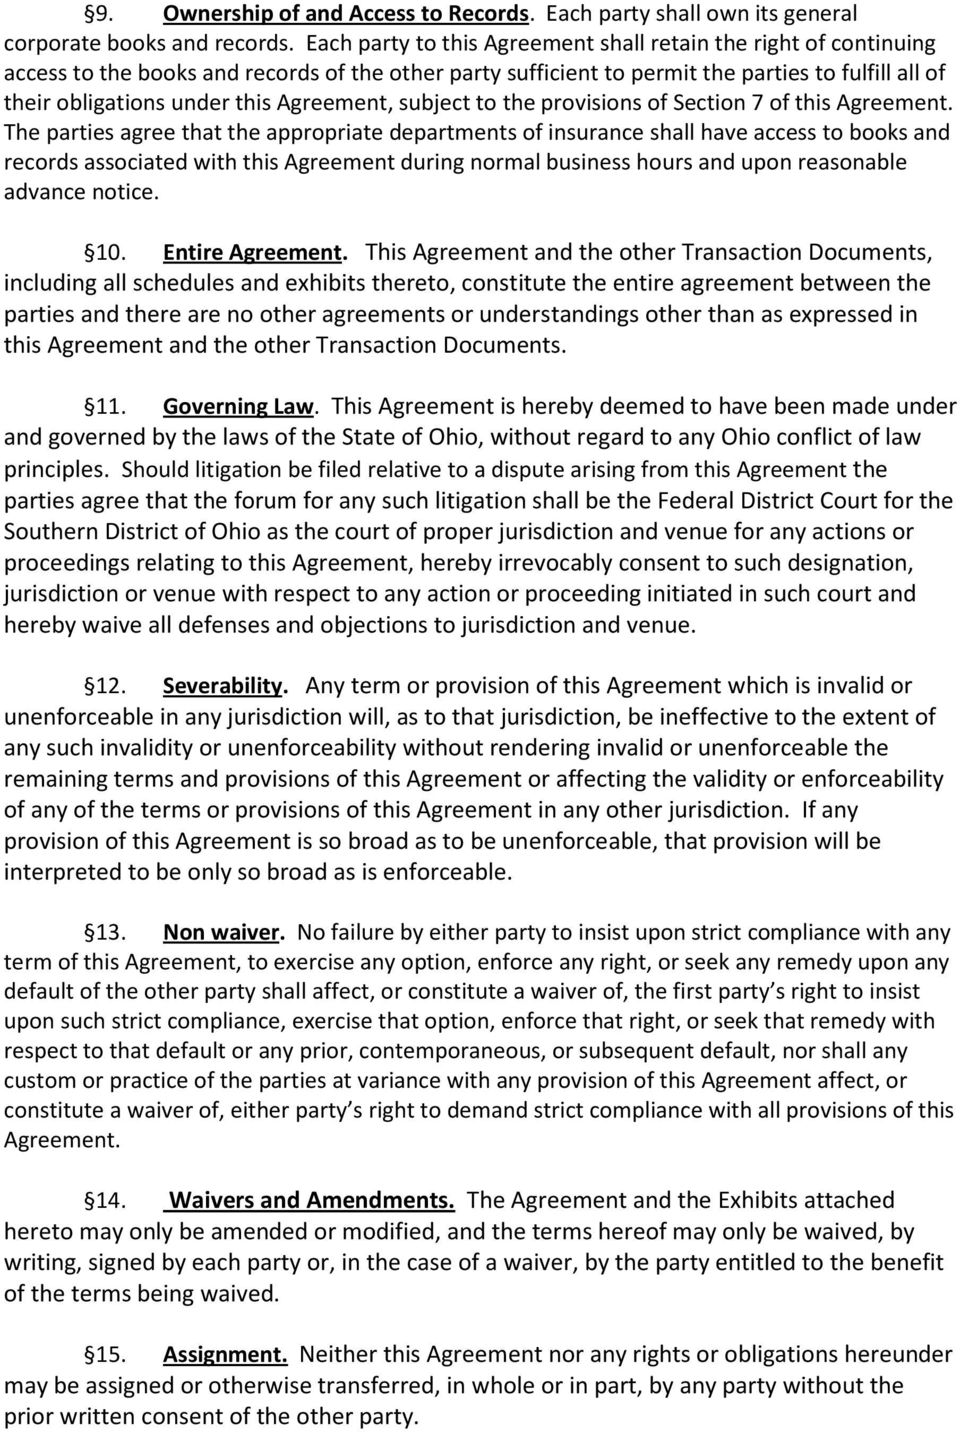 Agreement, subject to the provisions of Section 7 of this Agreement.